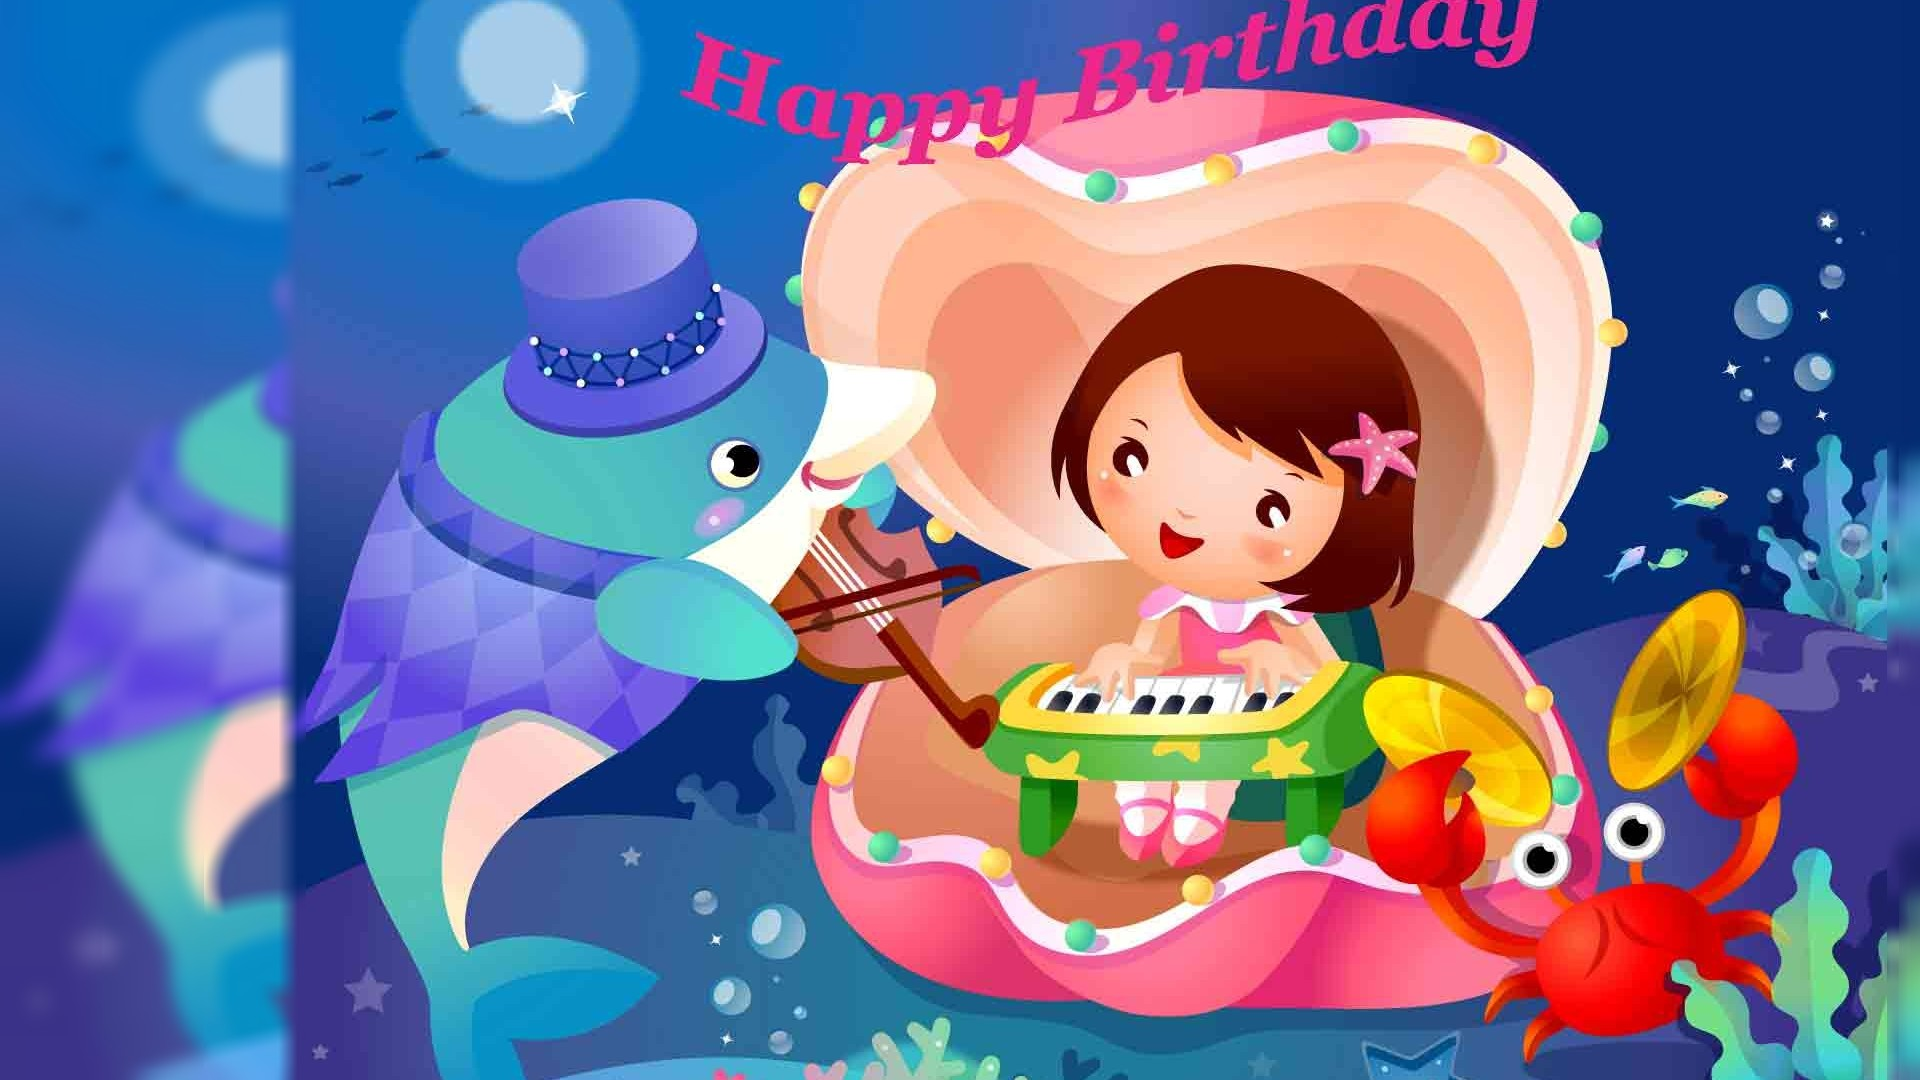 1920x1080 Cute animated happy birthday HD wallpapers free download